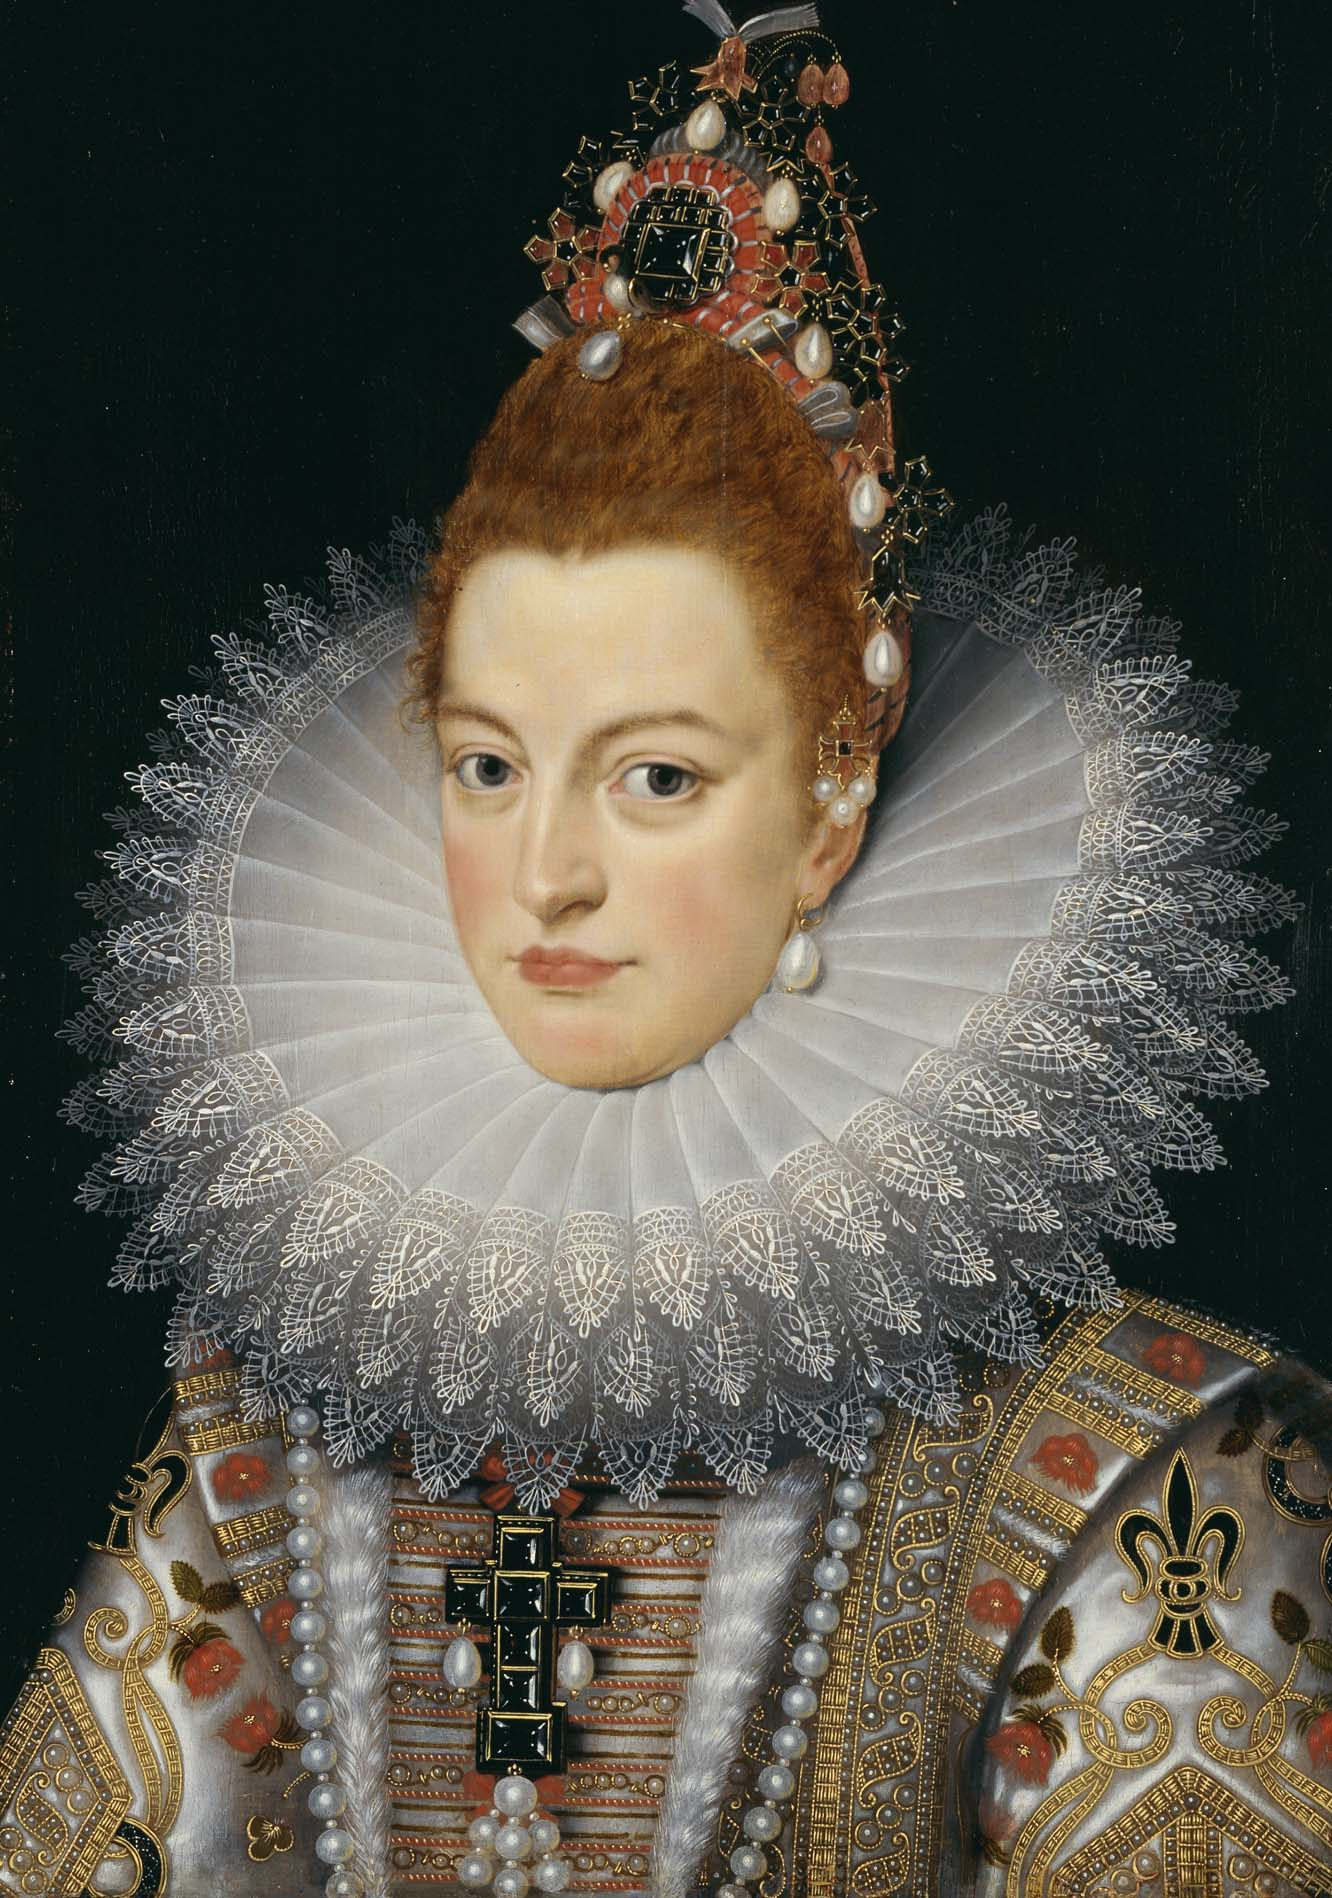 Painting of Isabella Clara Eugenia of Spain - Frans Pourbus II from the 17th Century.